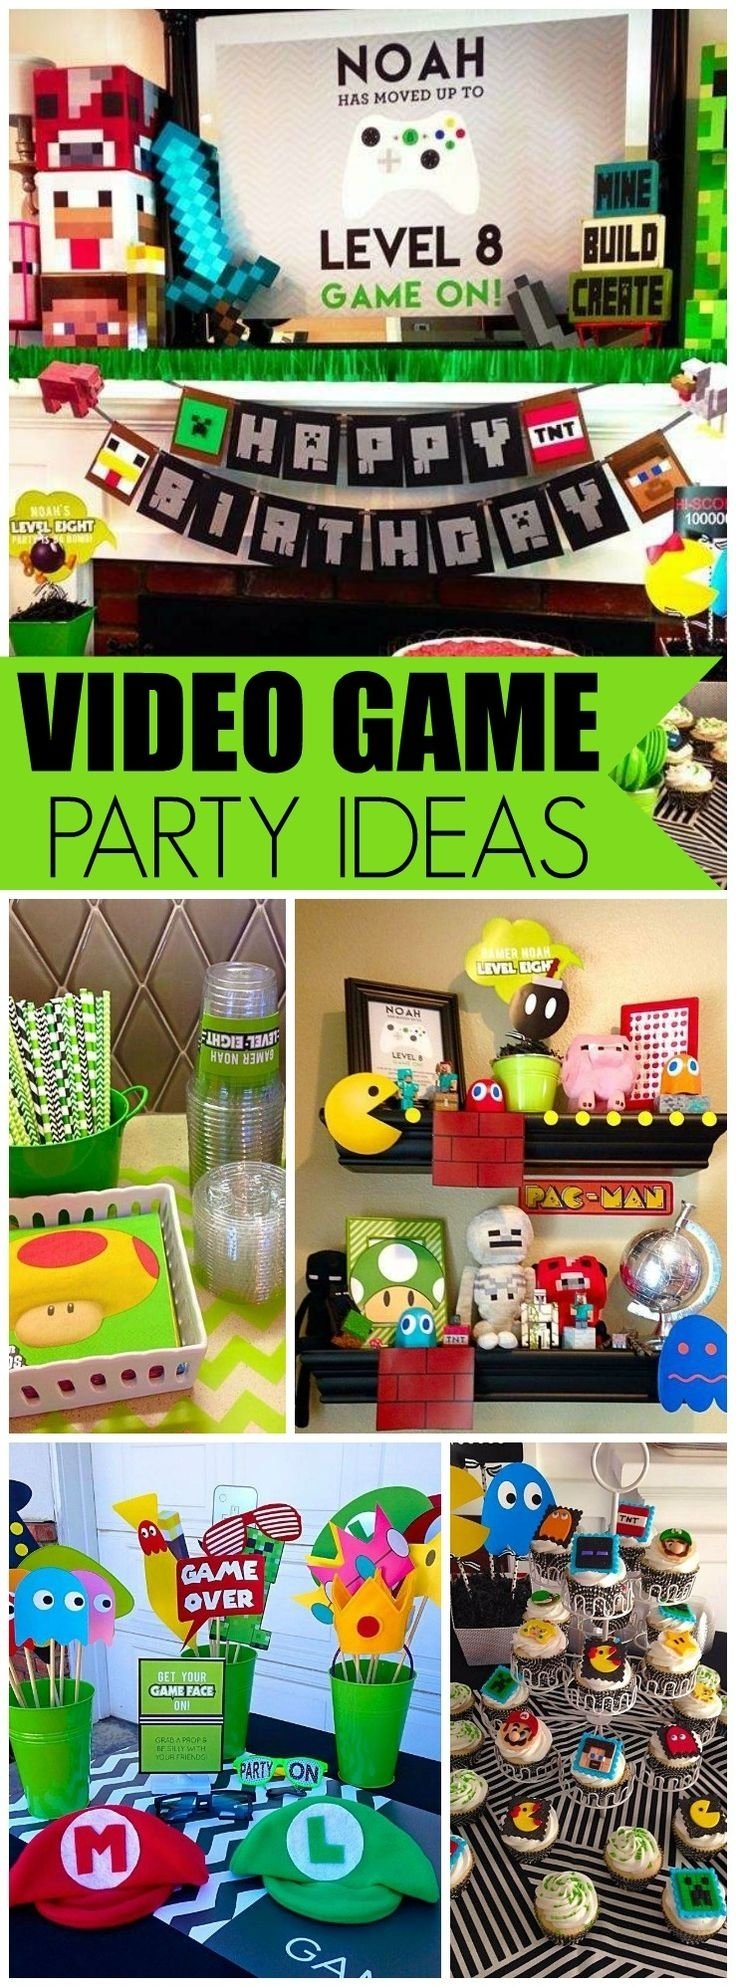 10 Lovely Video Game Birthday Party Ideas 17 best video game party images on pinterest birthdays video game 2020